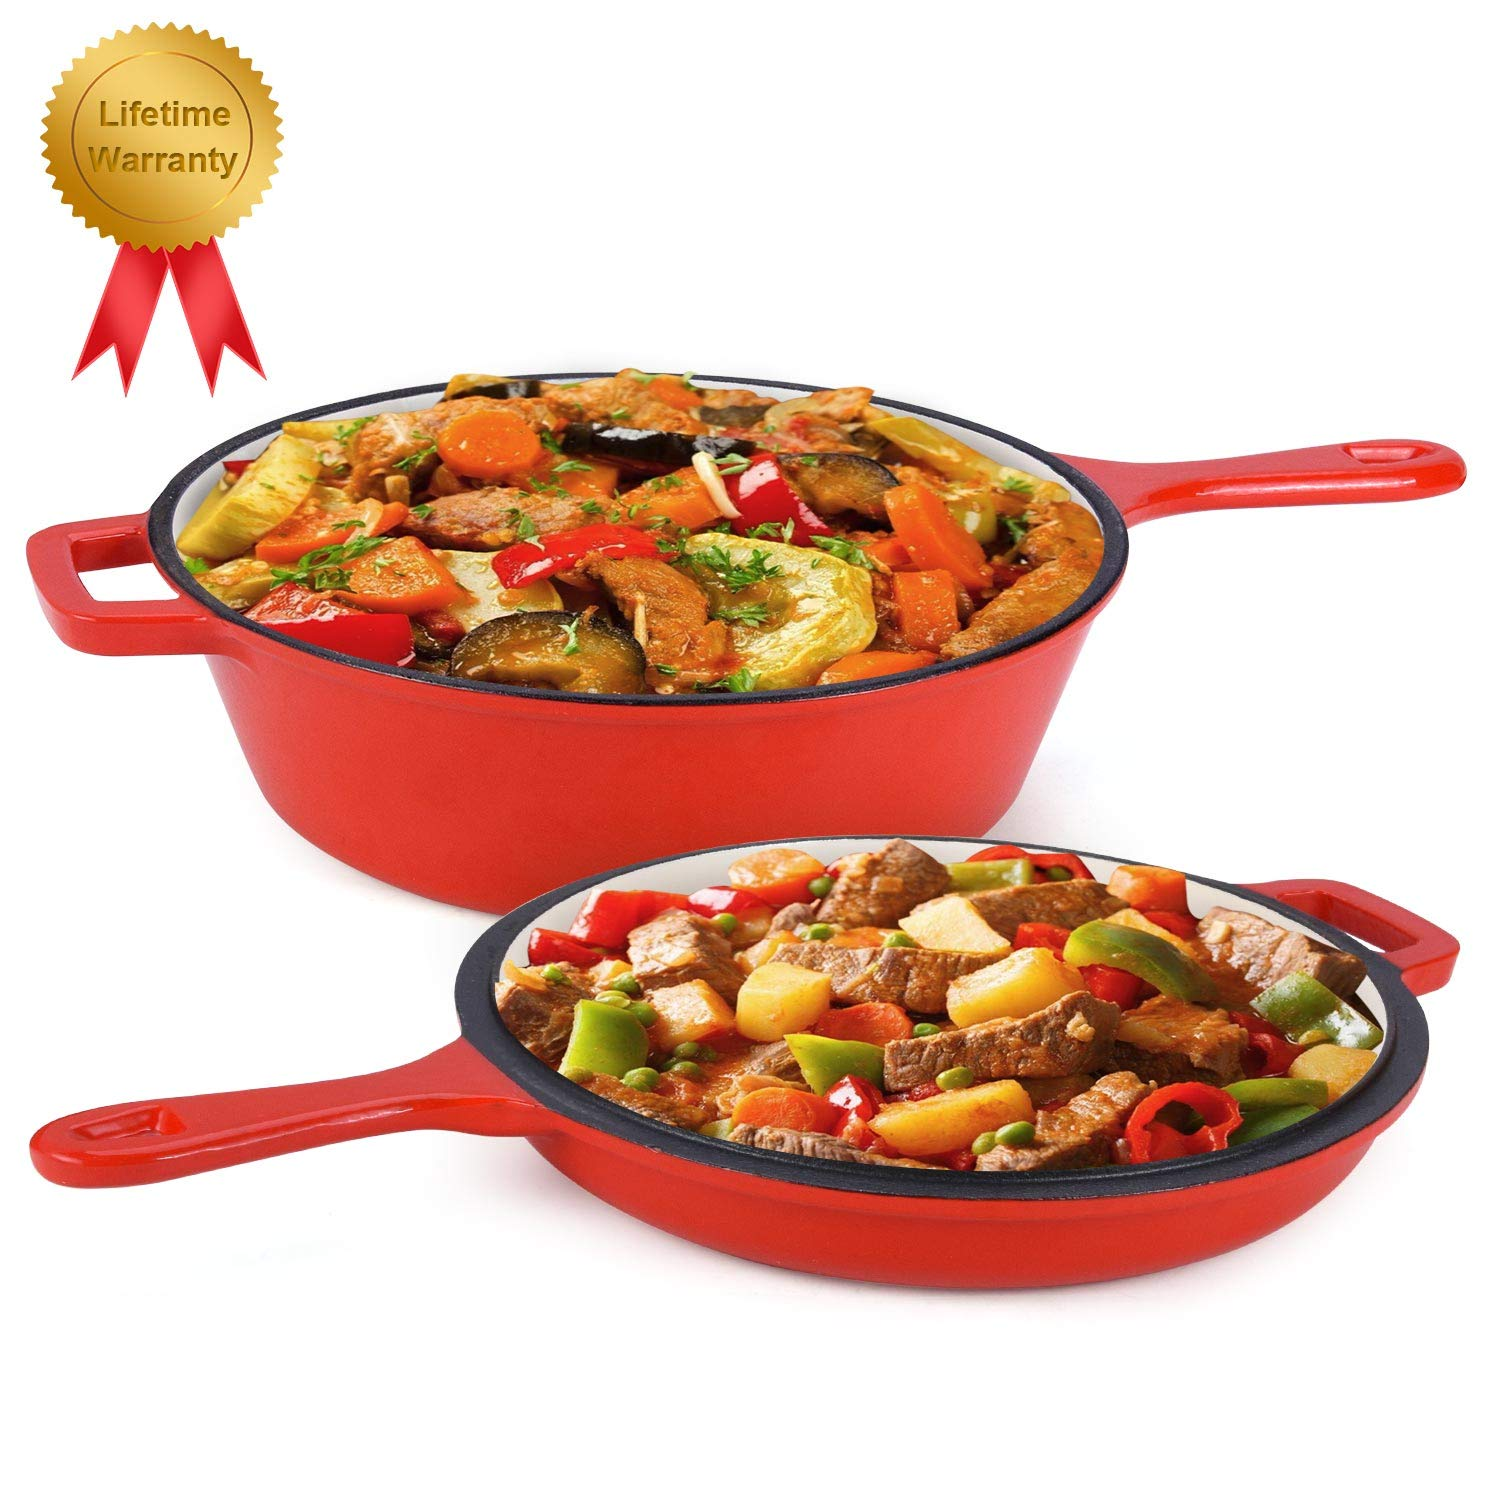 Enameled 2-In-1 Cast Iron Multi-Cooker - Heavy Duty 3.2 Quart Skillet and Lid Set, Cast Iron Saucepan and Shallow Skillet Lid Set Sauce Pot & Nonstick Frying Pan (Red) by Suteck